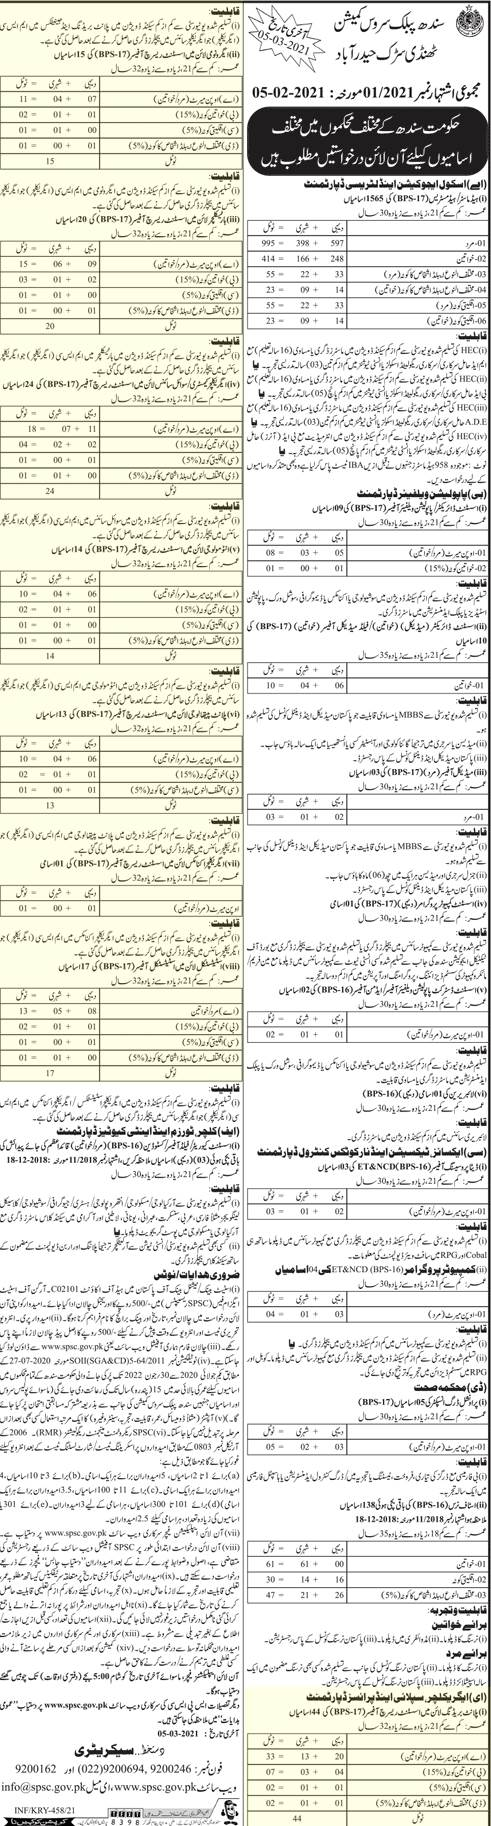 Agriculture Supply and Prices Department Sindh SPSC Jobs 2021